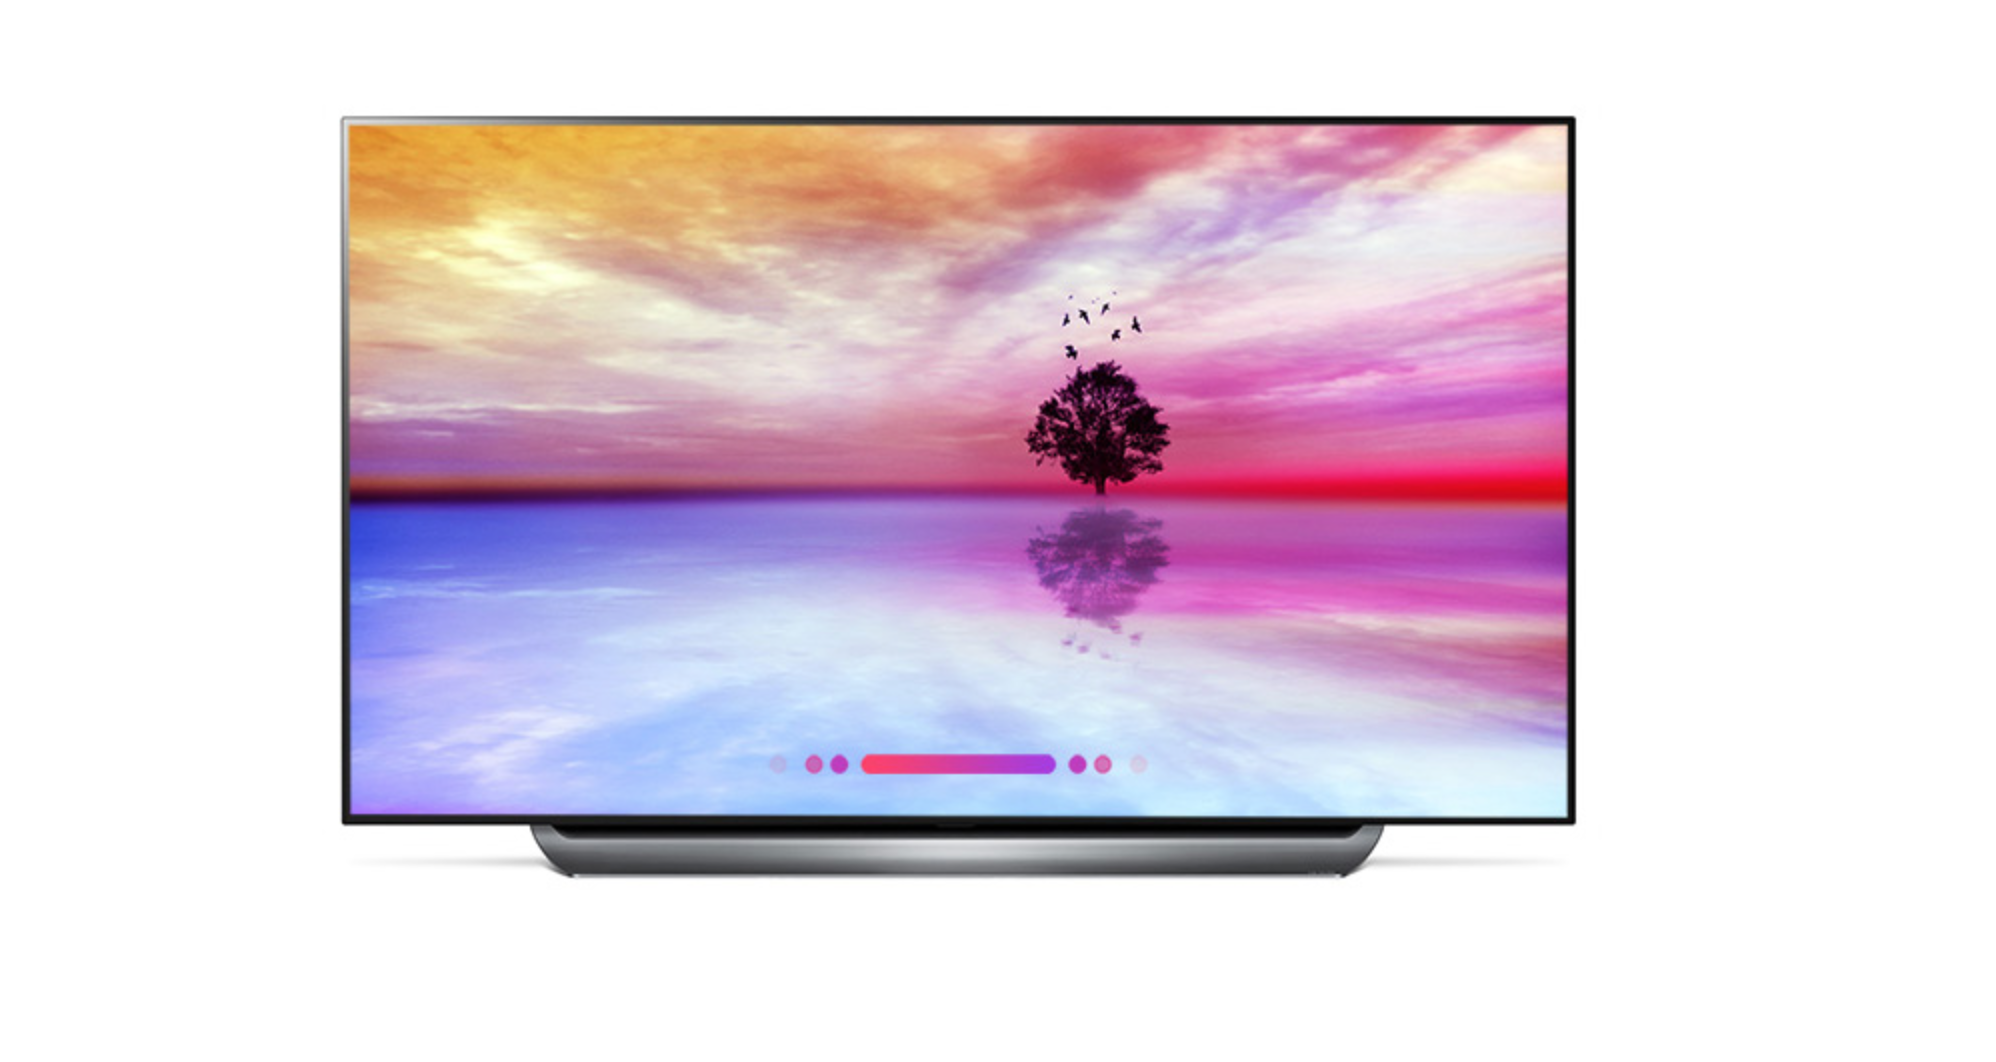 Screen Shot 2018 01 17 at 2.32.37 pm LG AI OLED Wins CES 2018 Best TV Award